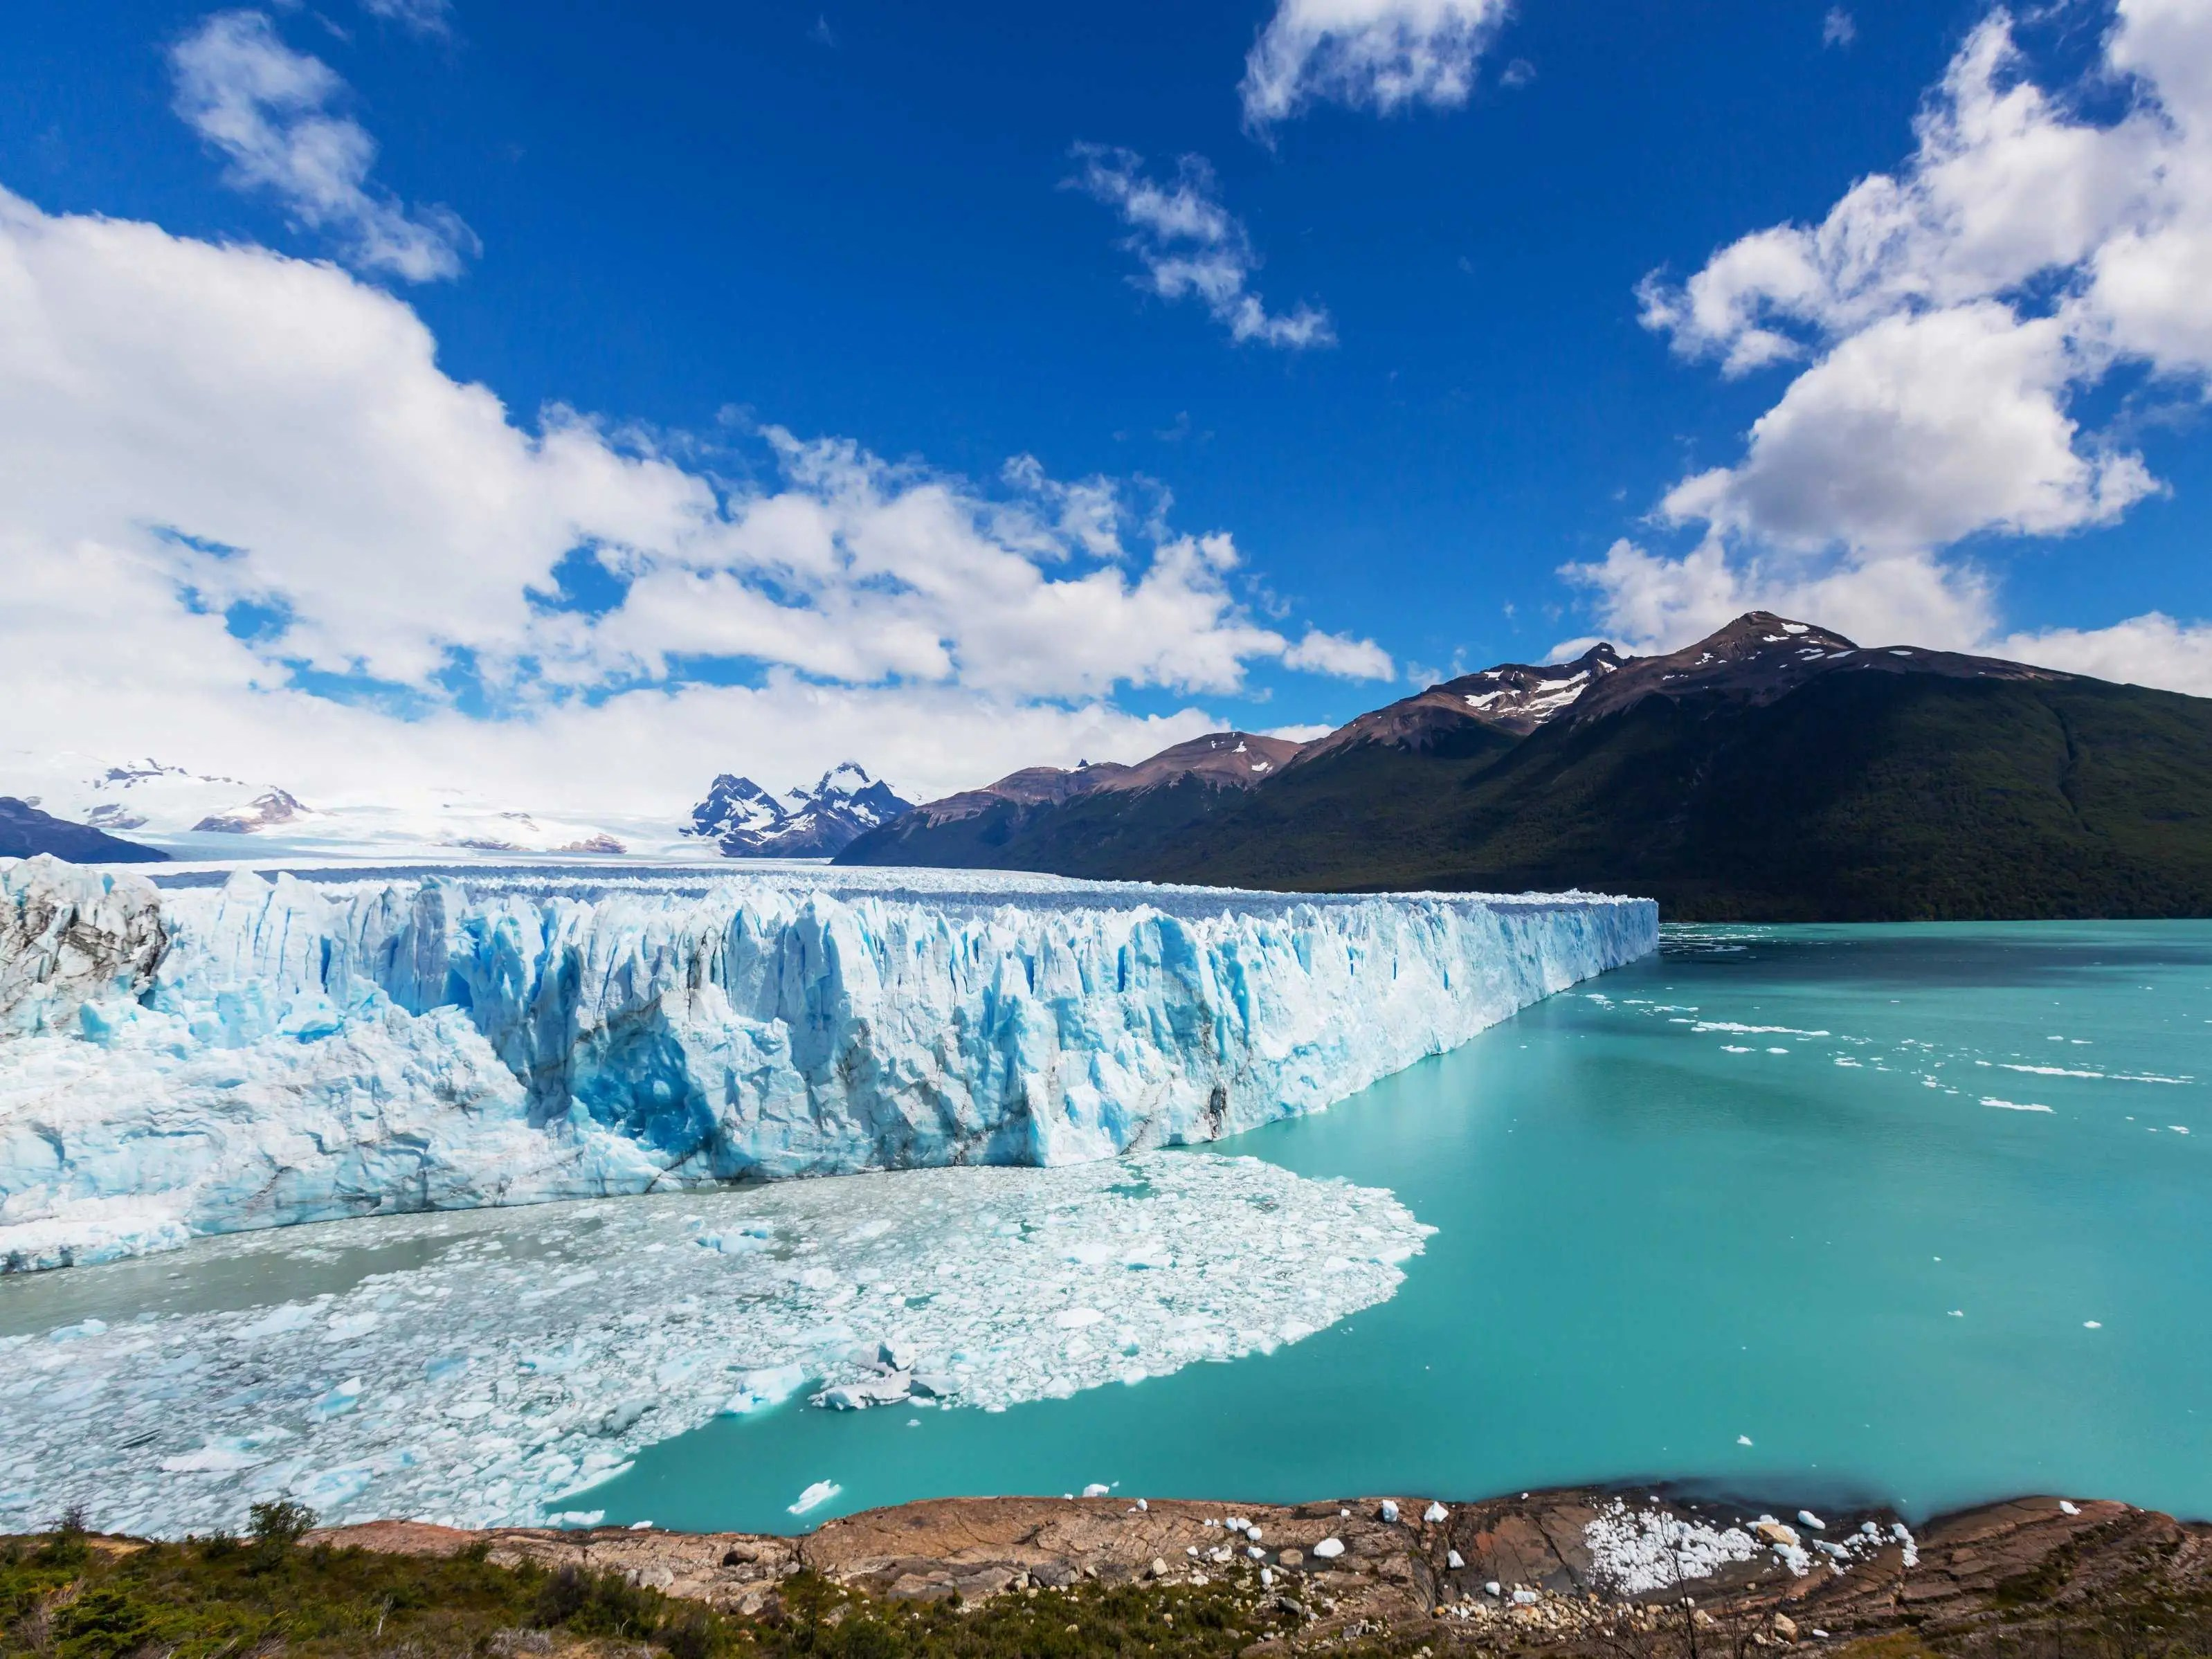 Los Glaciares National Park in Patagonia, Argentina, is home to the largest ice mantle outside of Antarctica. Glaciers feed into the nearby Lake Argentino to create a breathtaking view.